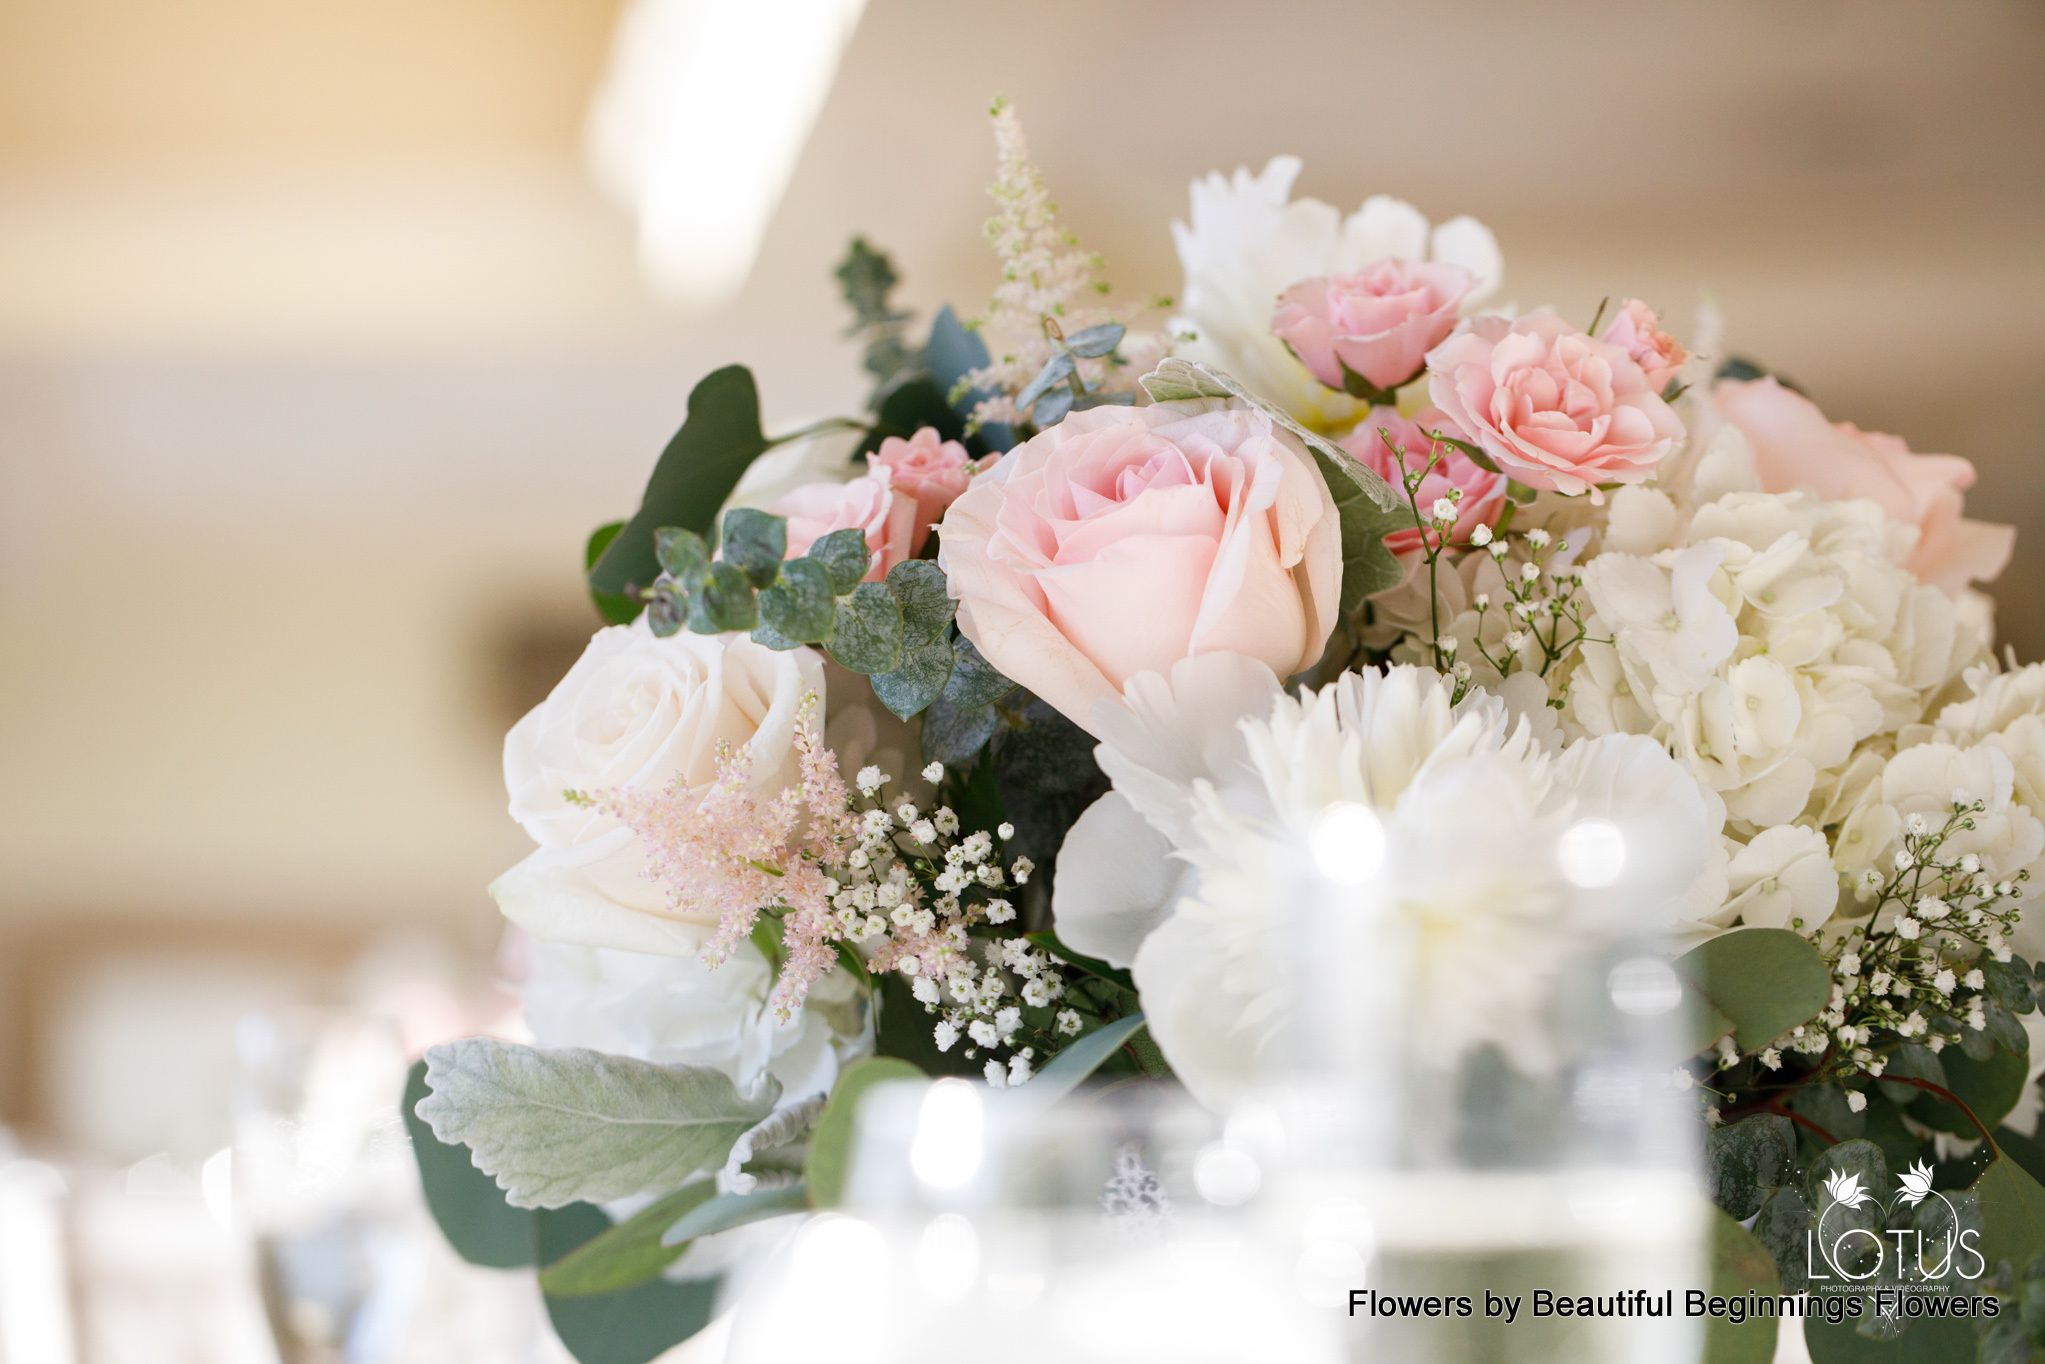 Pin by beautiful beginnings flowers on jaclyn and patricks wedding weddings bodas receptions wedding izmirmasajfo Choice Image